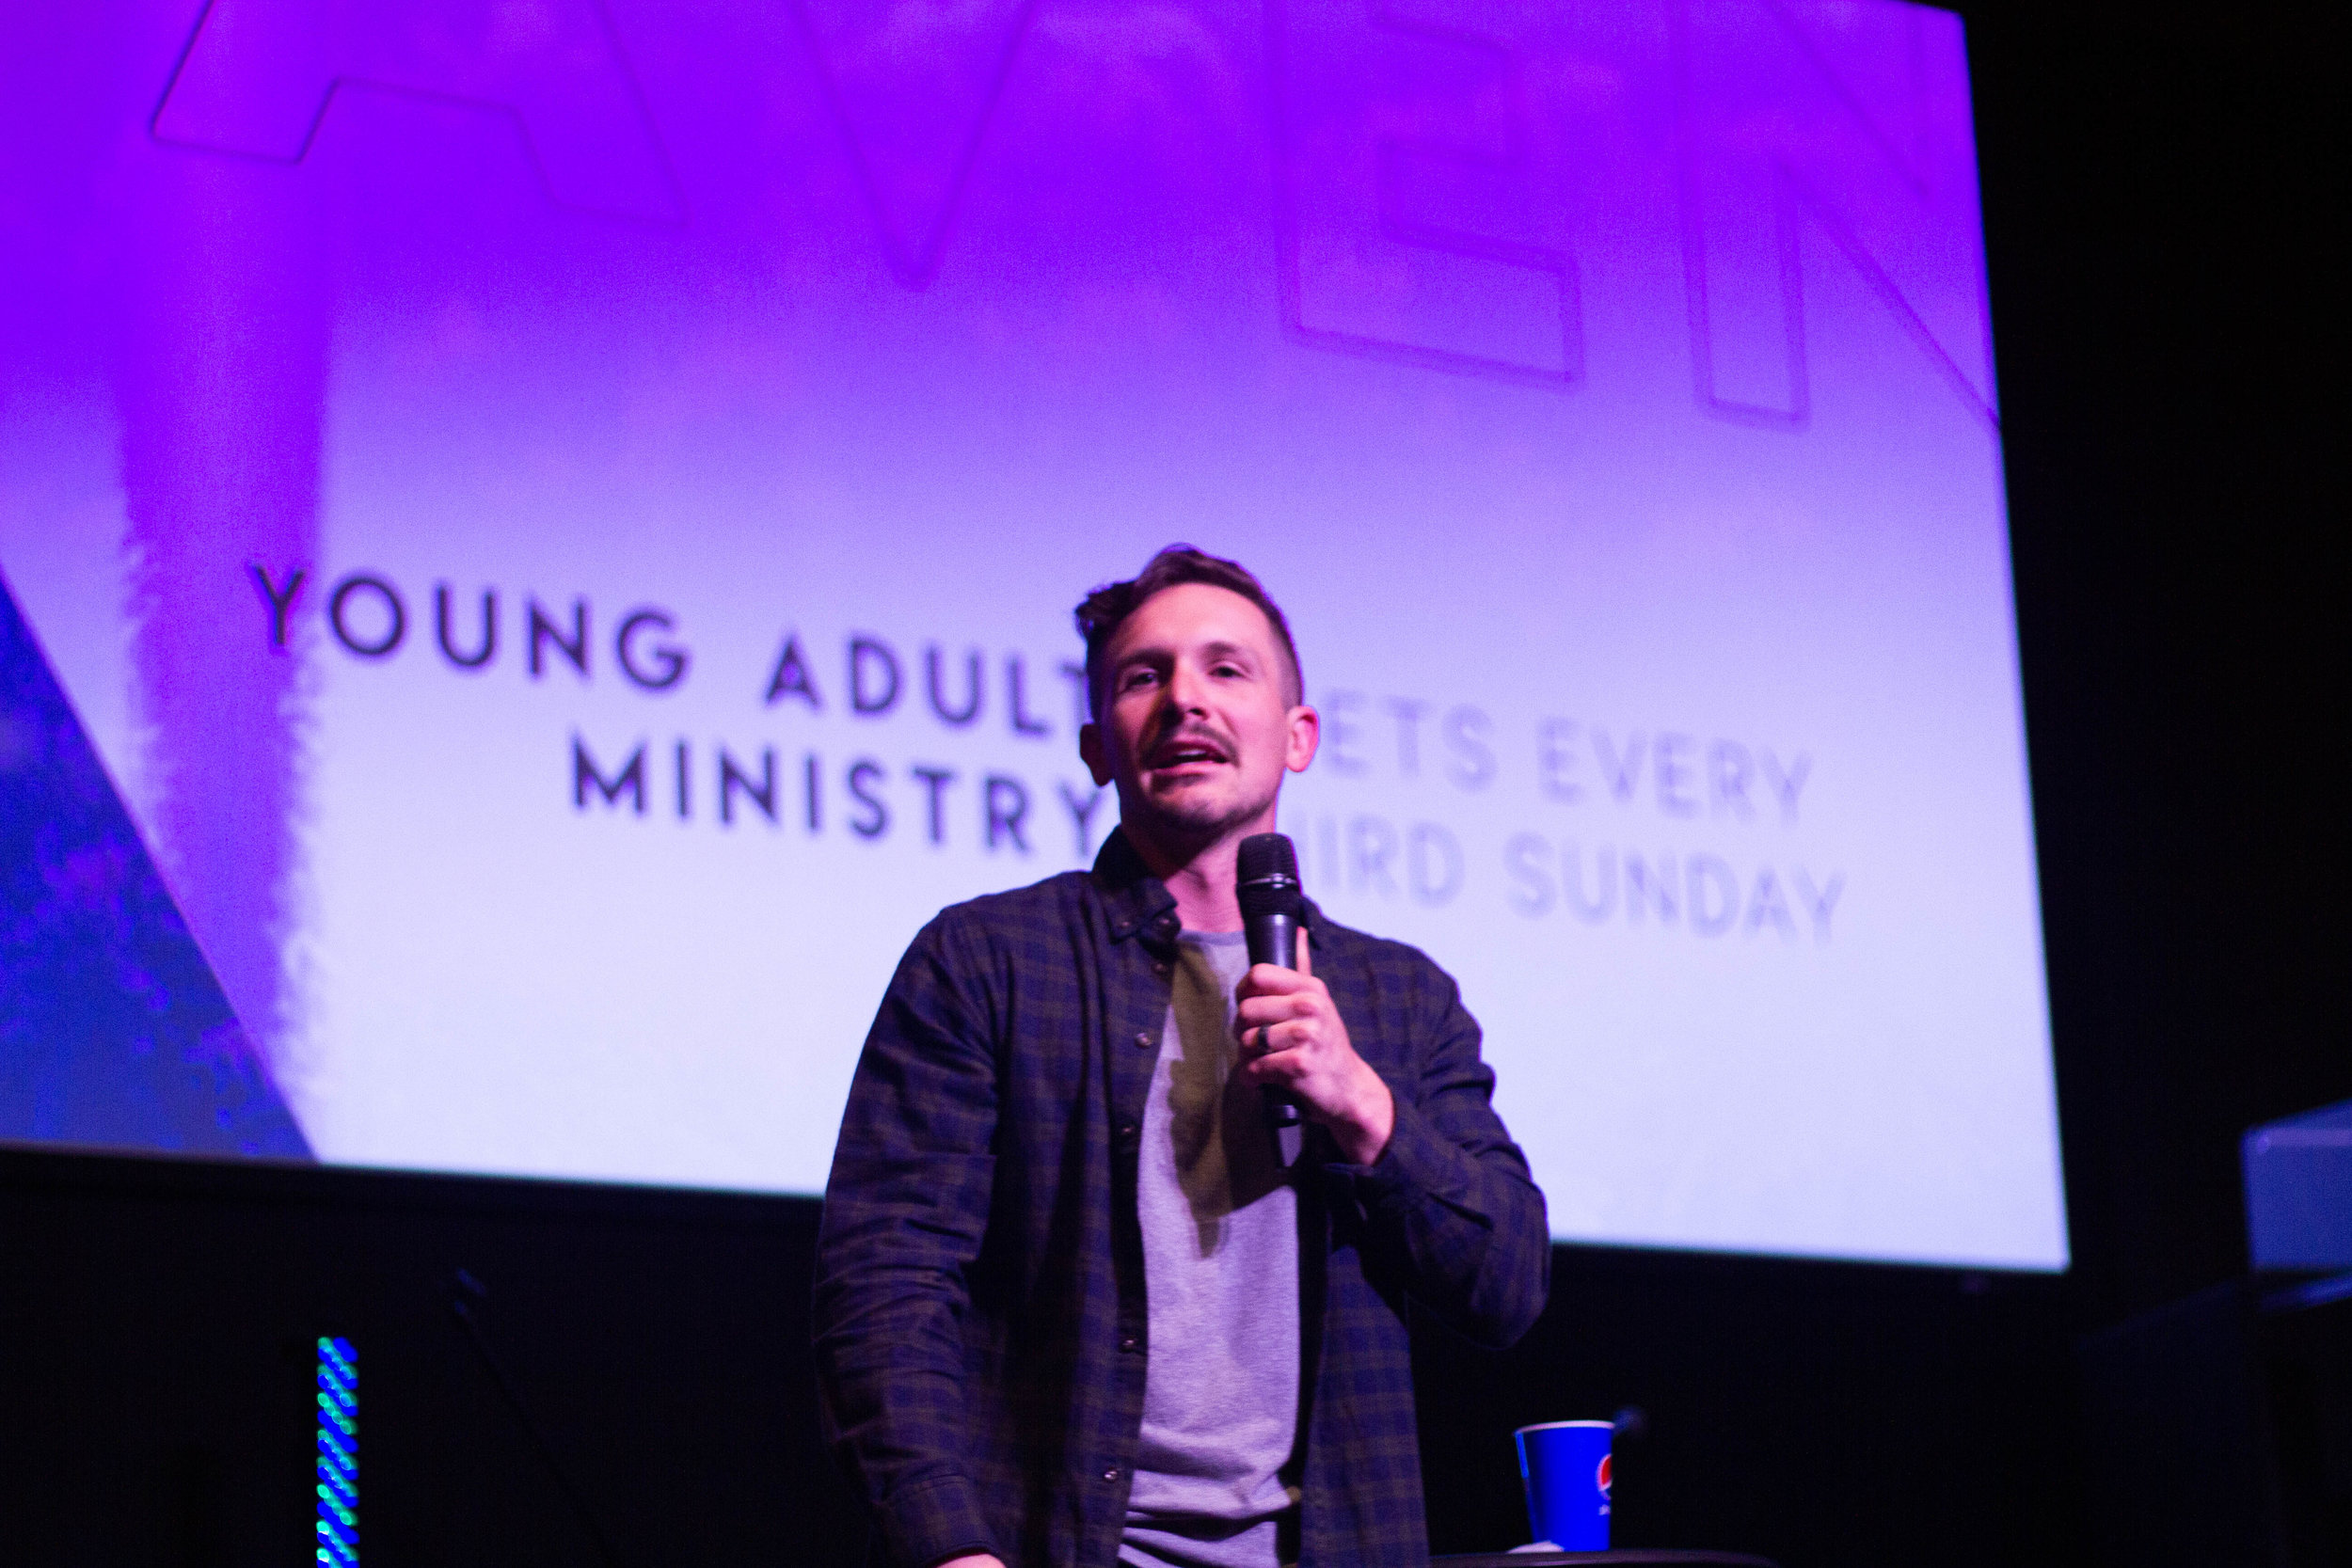 Sean Connor - Sean is the Youth and Young Adults Pastor at WHWC. He has been pastoring for over seven years and is a graduate from Rhema Bible Training College.